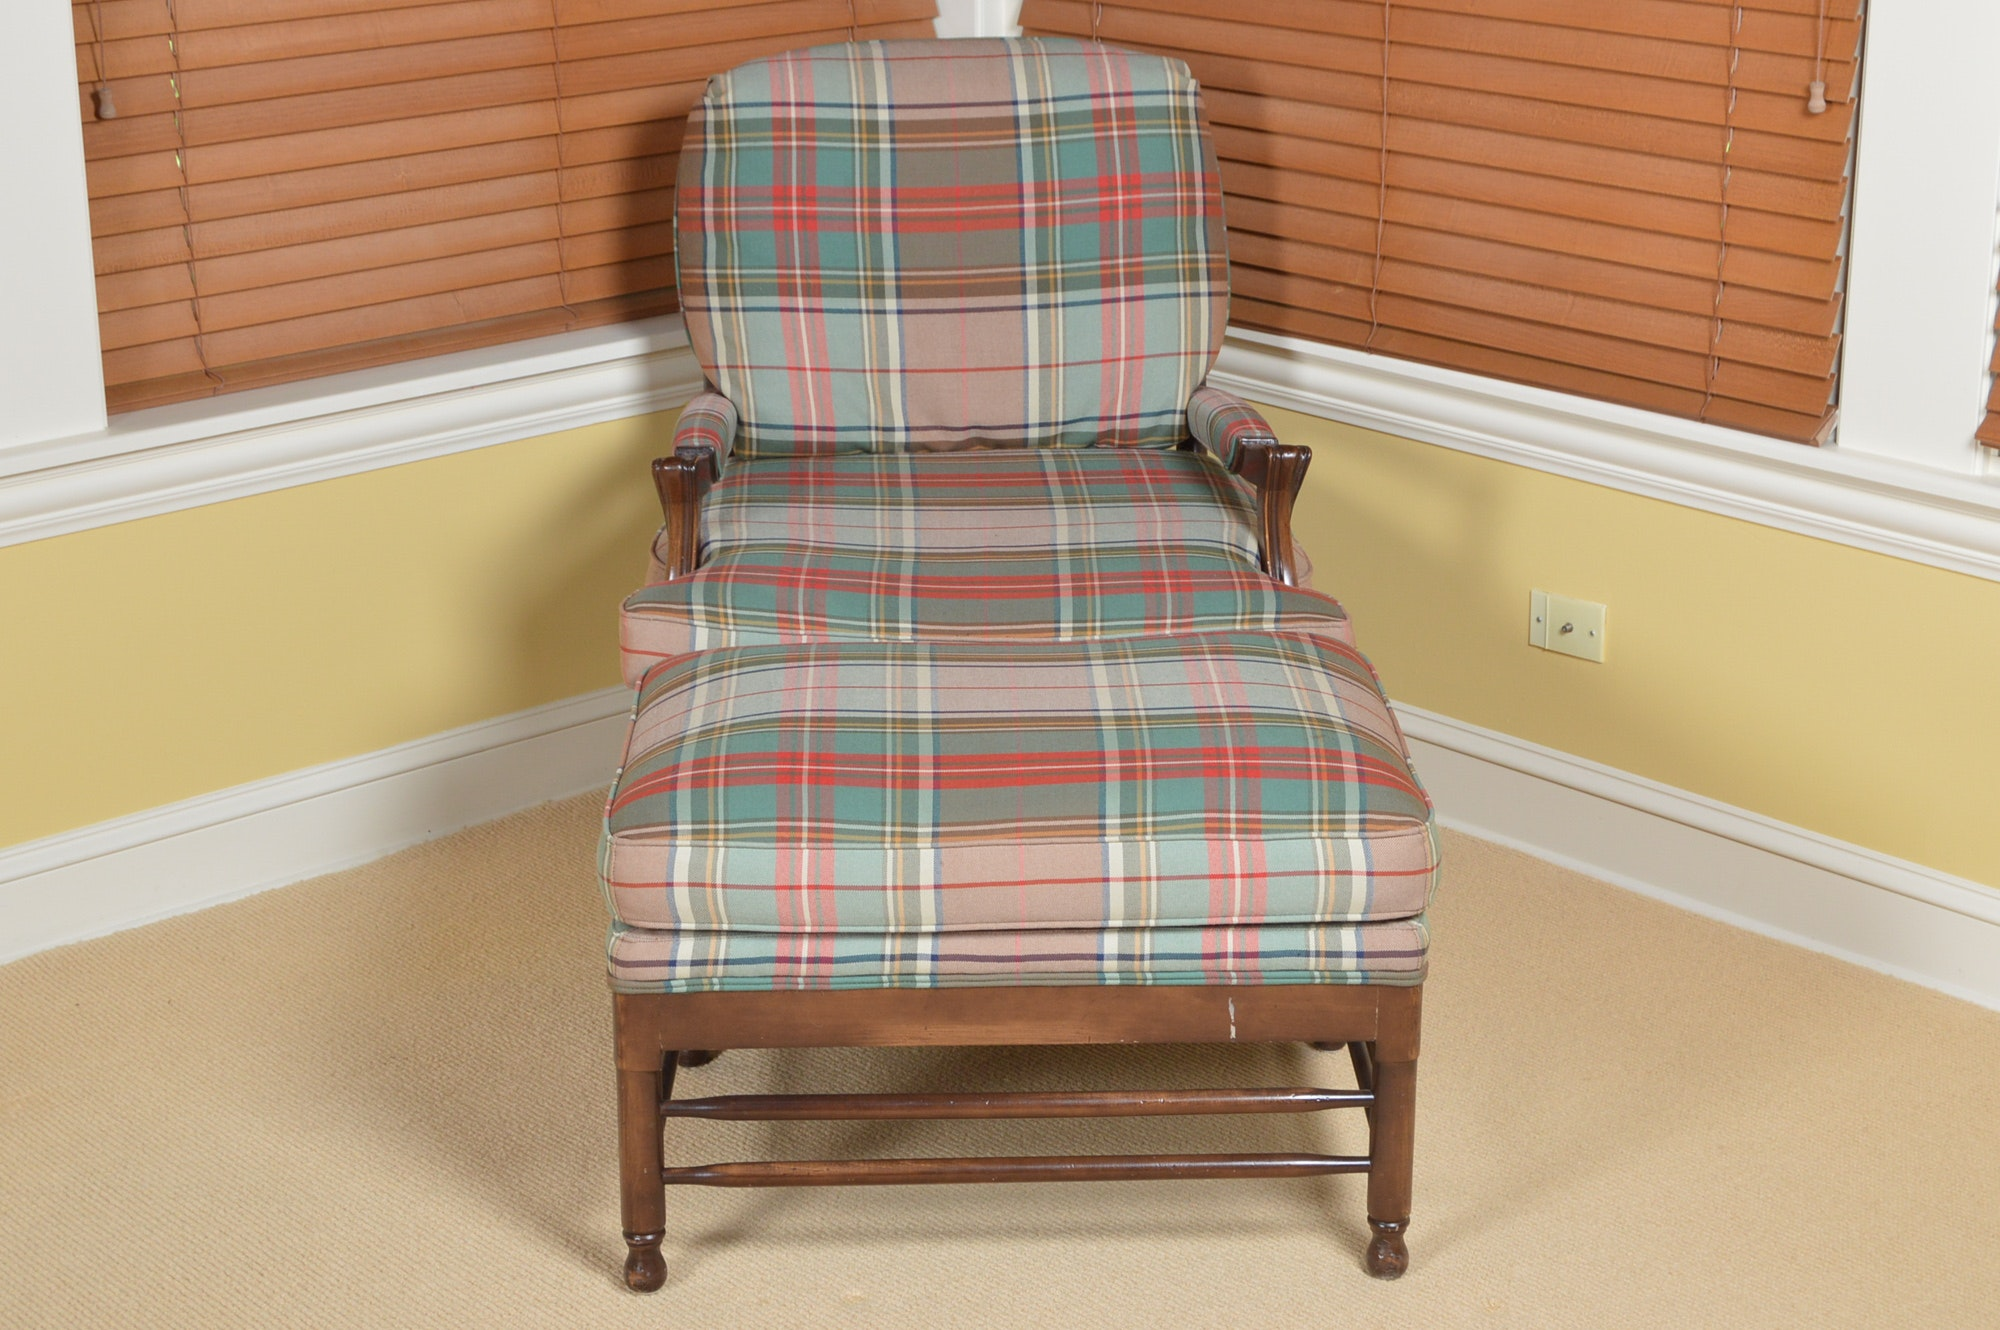 Plaid Accent Chair and Ottoman by Calico Corners